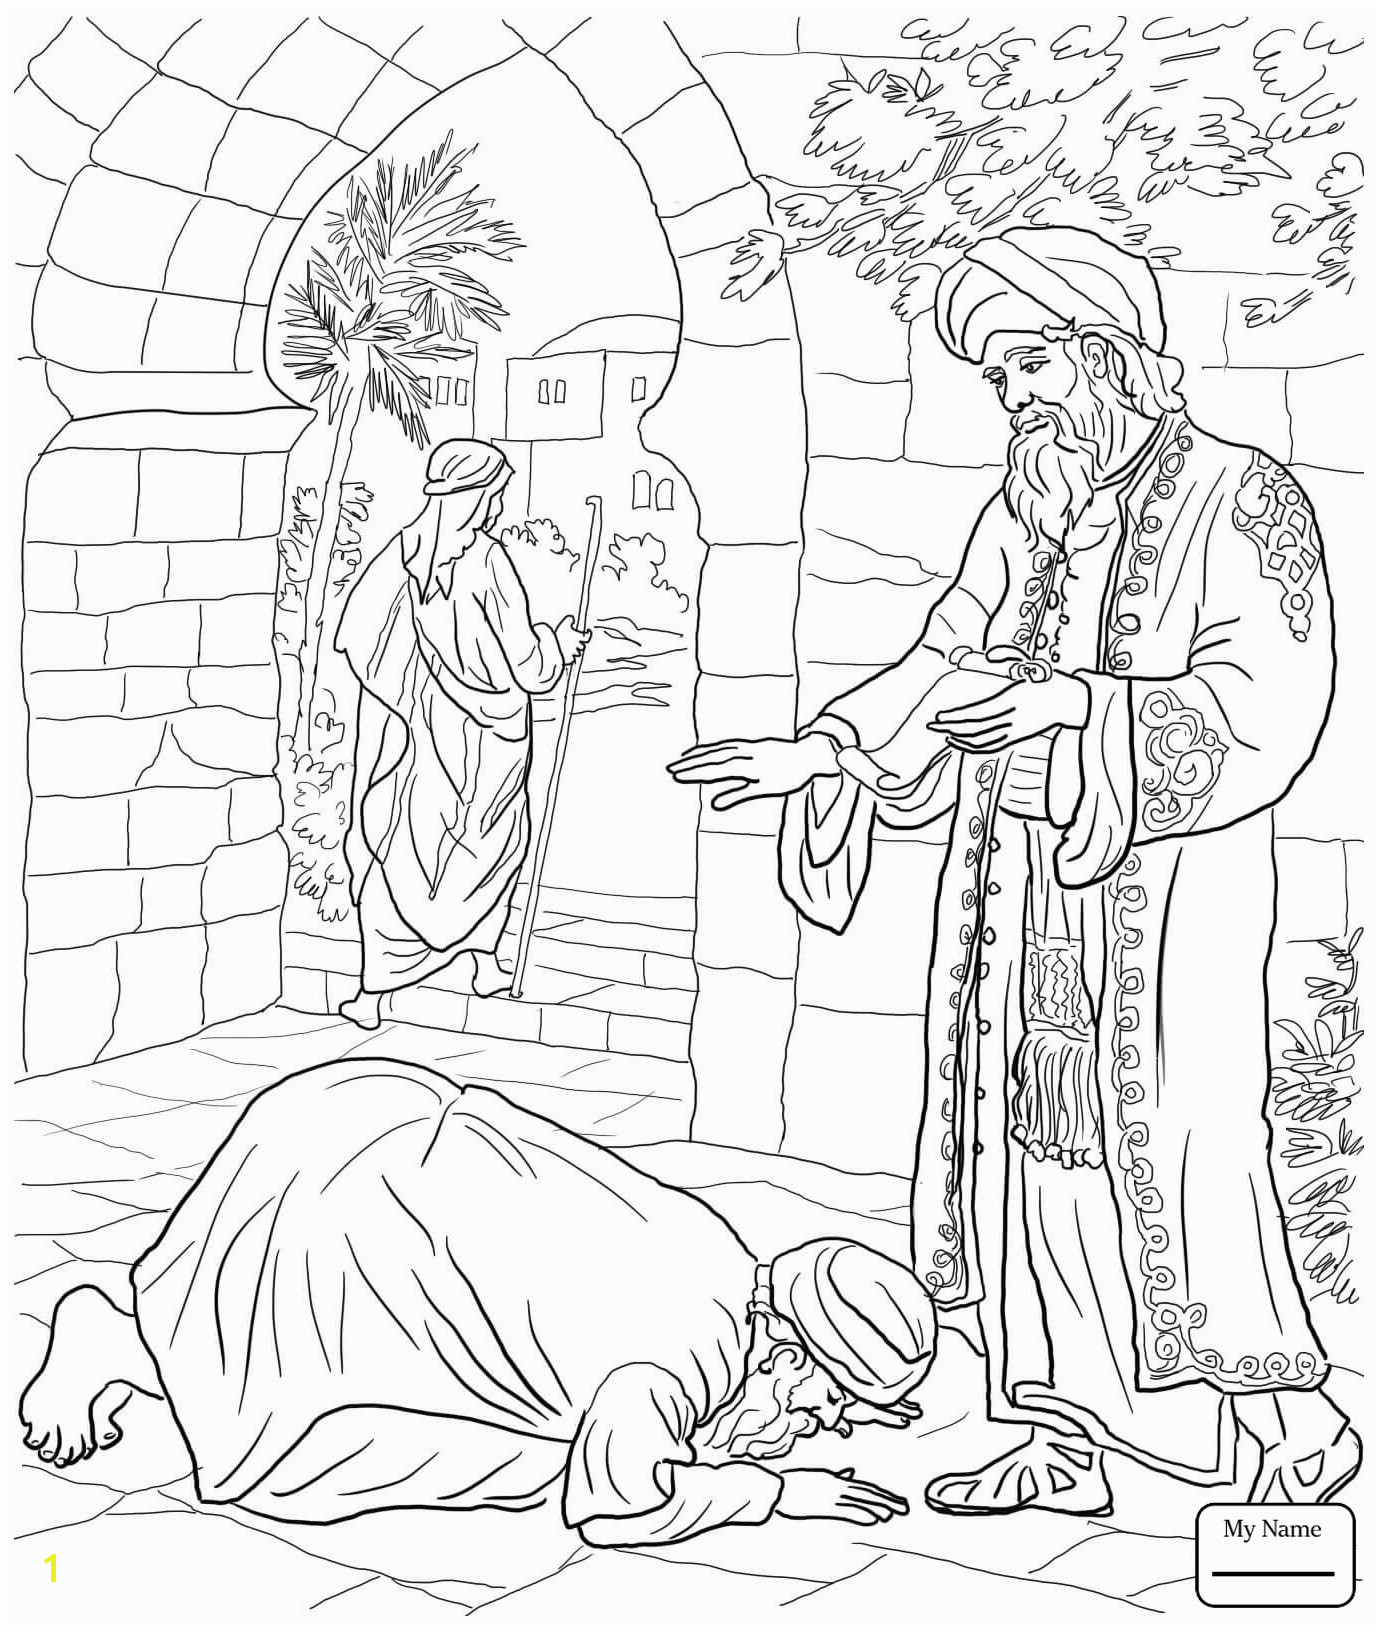 Pharisee and Tax Collector Coloring Page the Pharisee and the Tax Collector Coloring Page